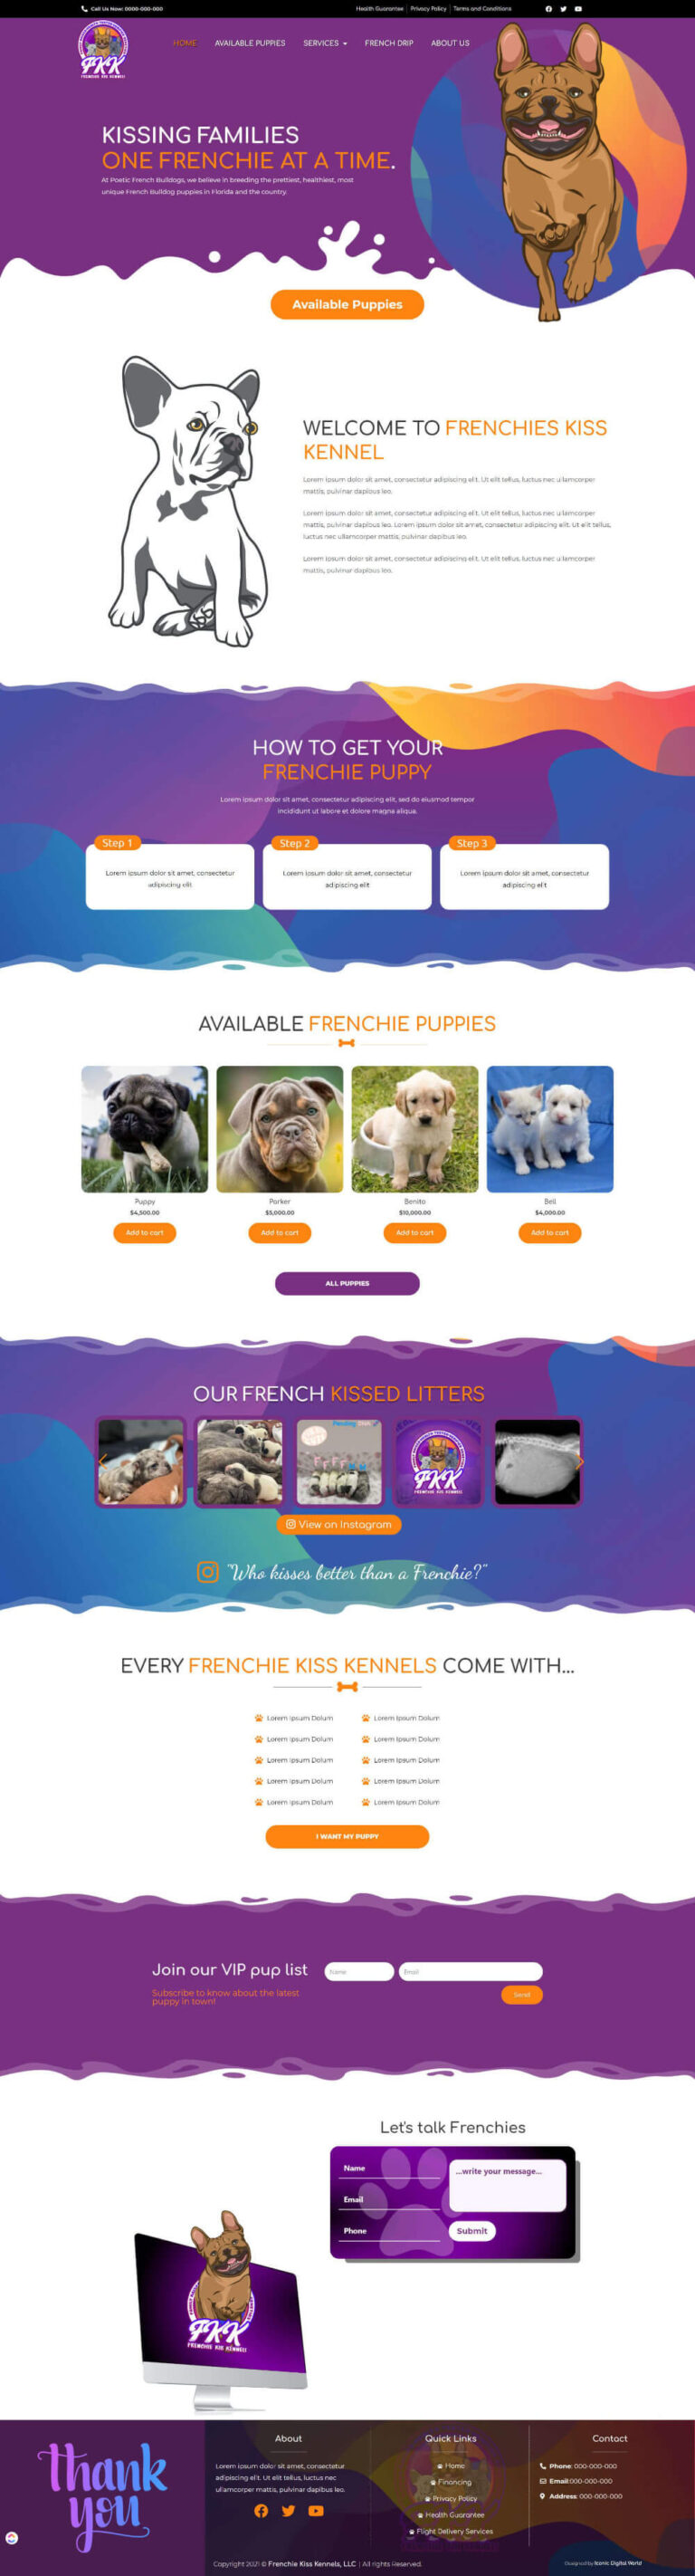 Frenchie Kiss Kennels New Website Design Home